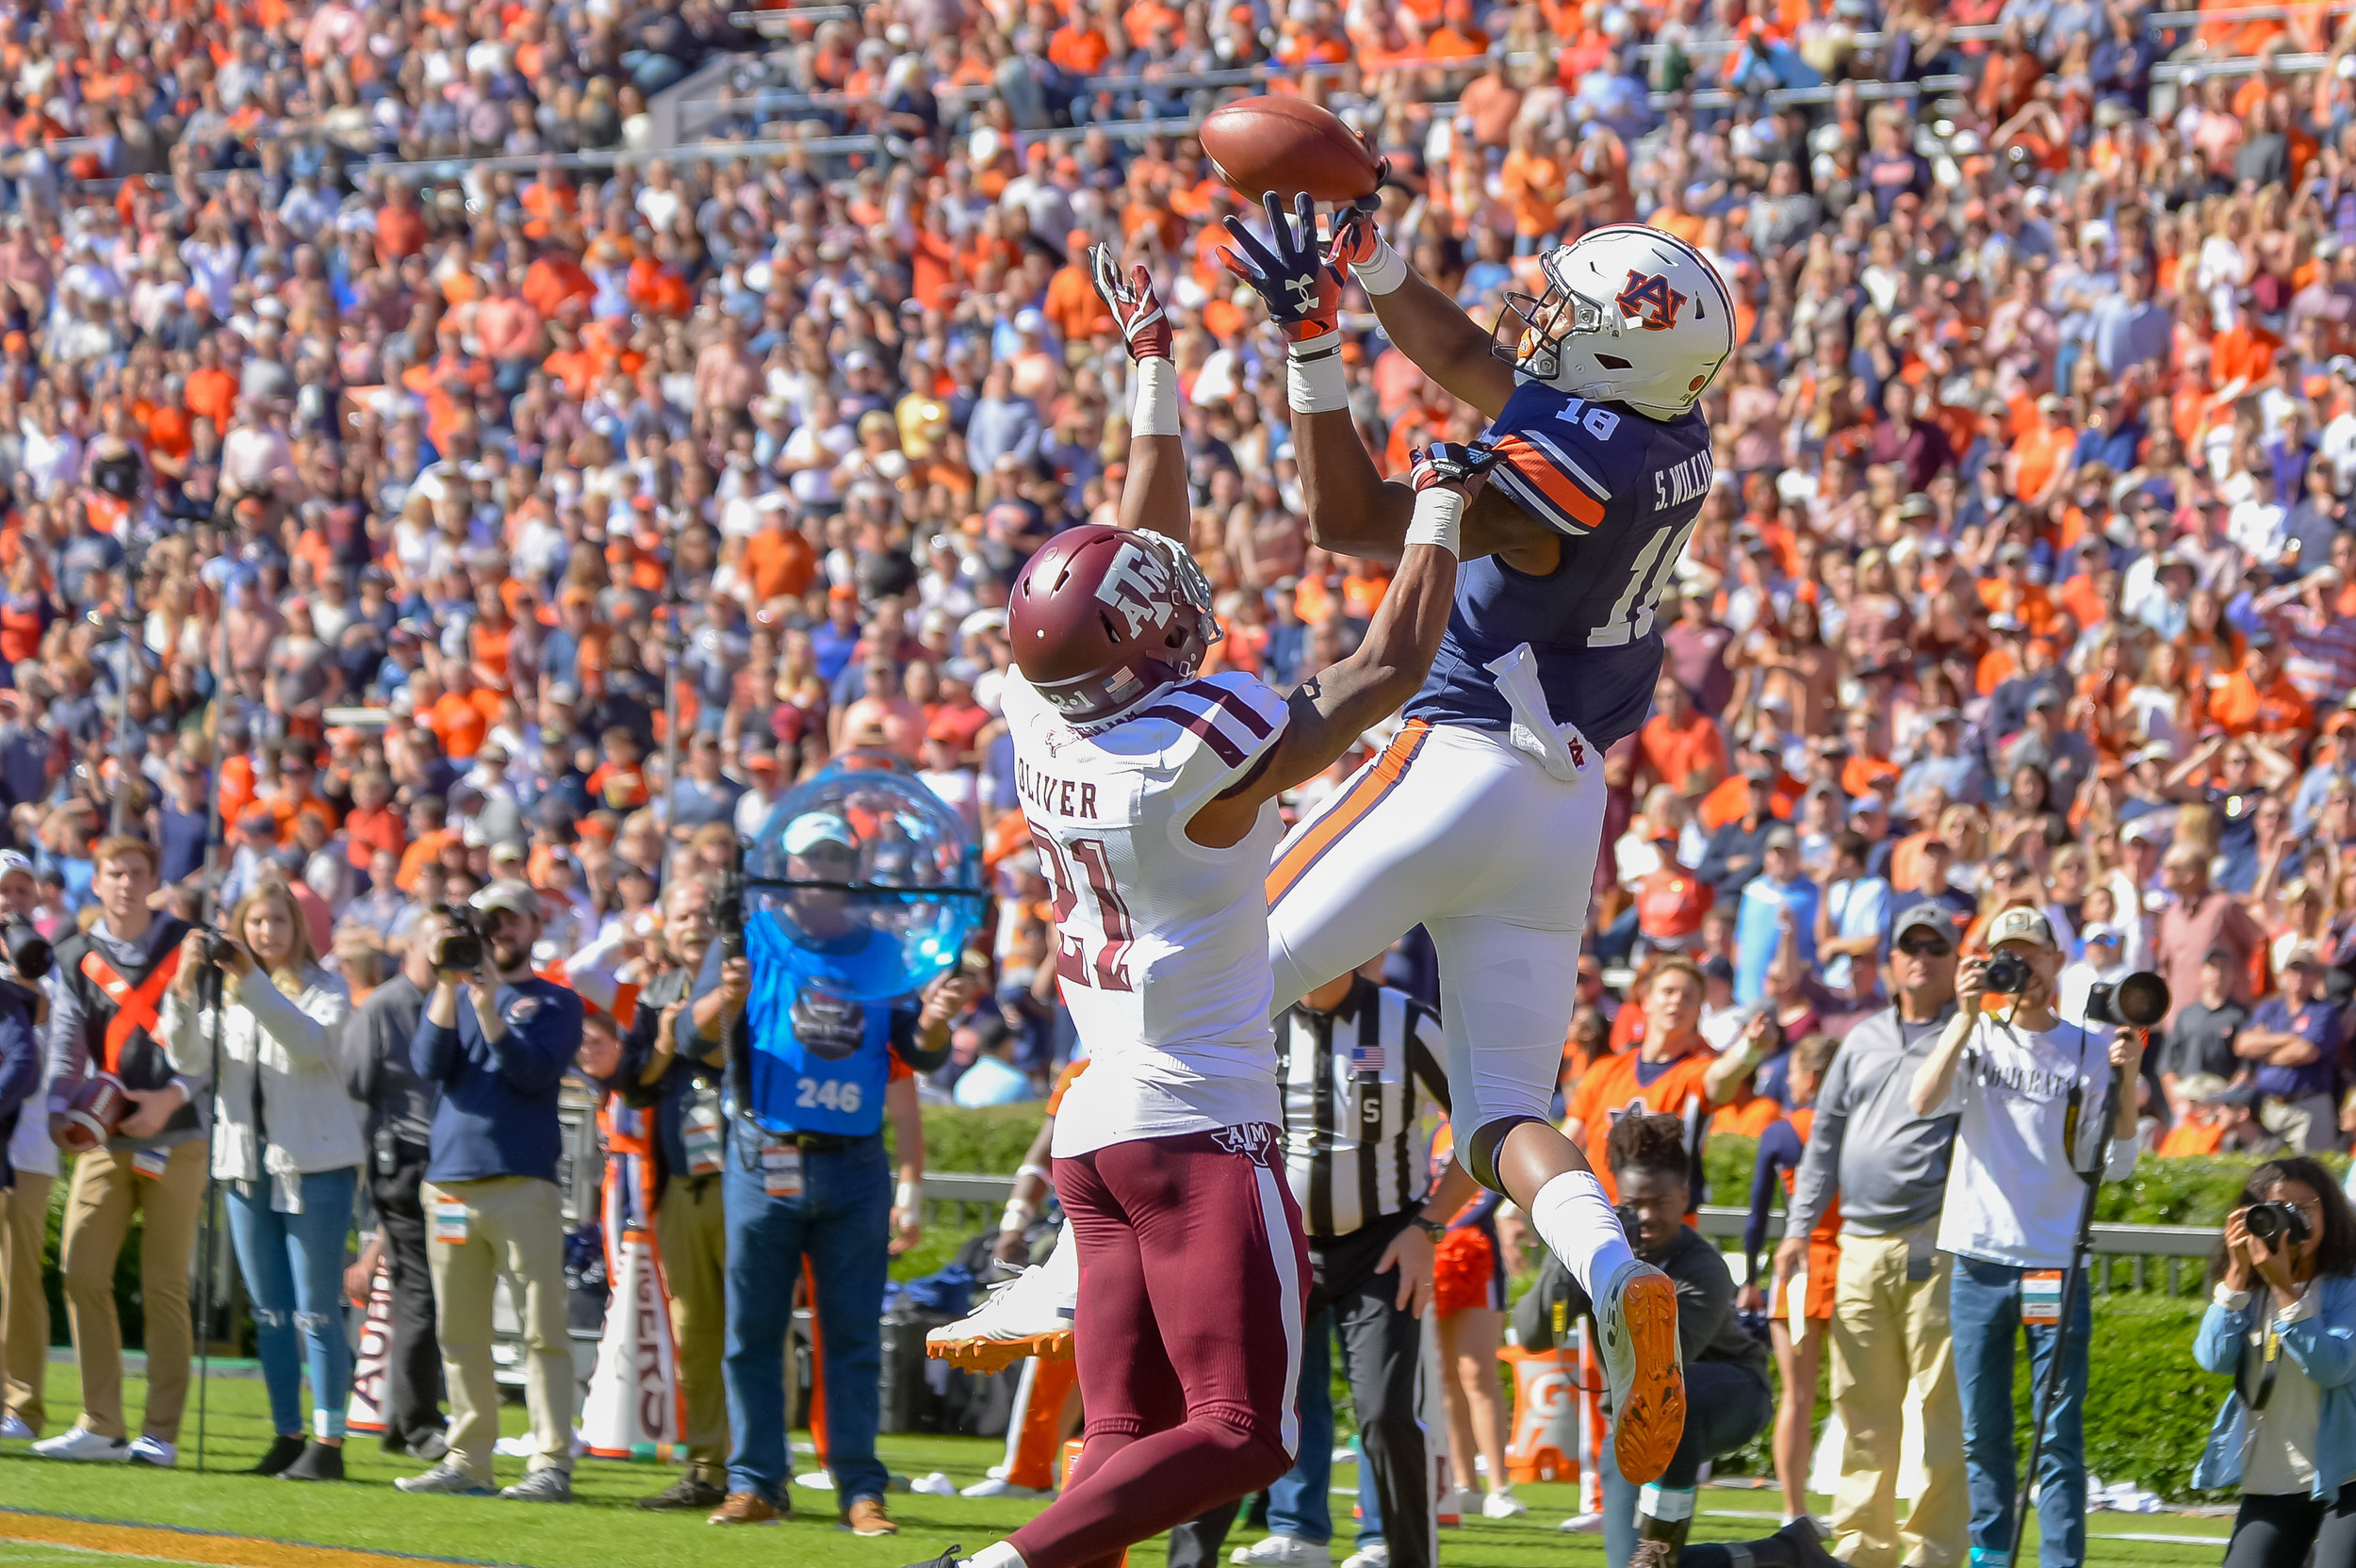 Auburn Tigers wide receiver Seth Williams (18) goes high above Texas A&M Aggies defensive back Charles Oliver (21) to make a catch during the first half of an NCAA football game against the Texas A&M Aggies Saturday, November 3, 2018, at Jordan-Hare Stadium in Auburn, Ala. (Photo by Jeff Johnsey)